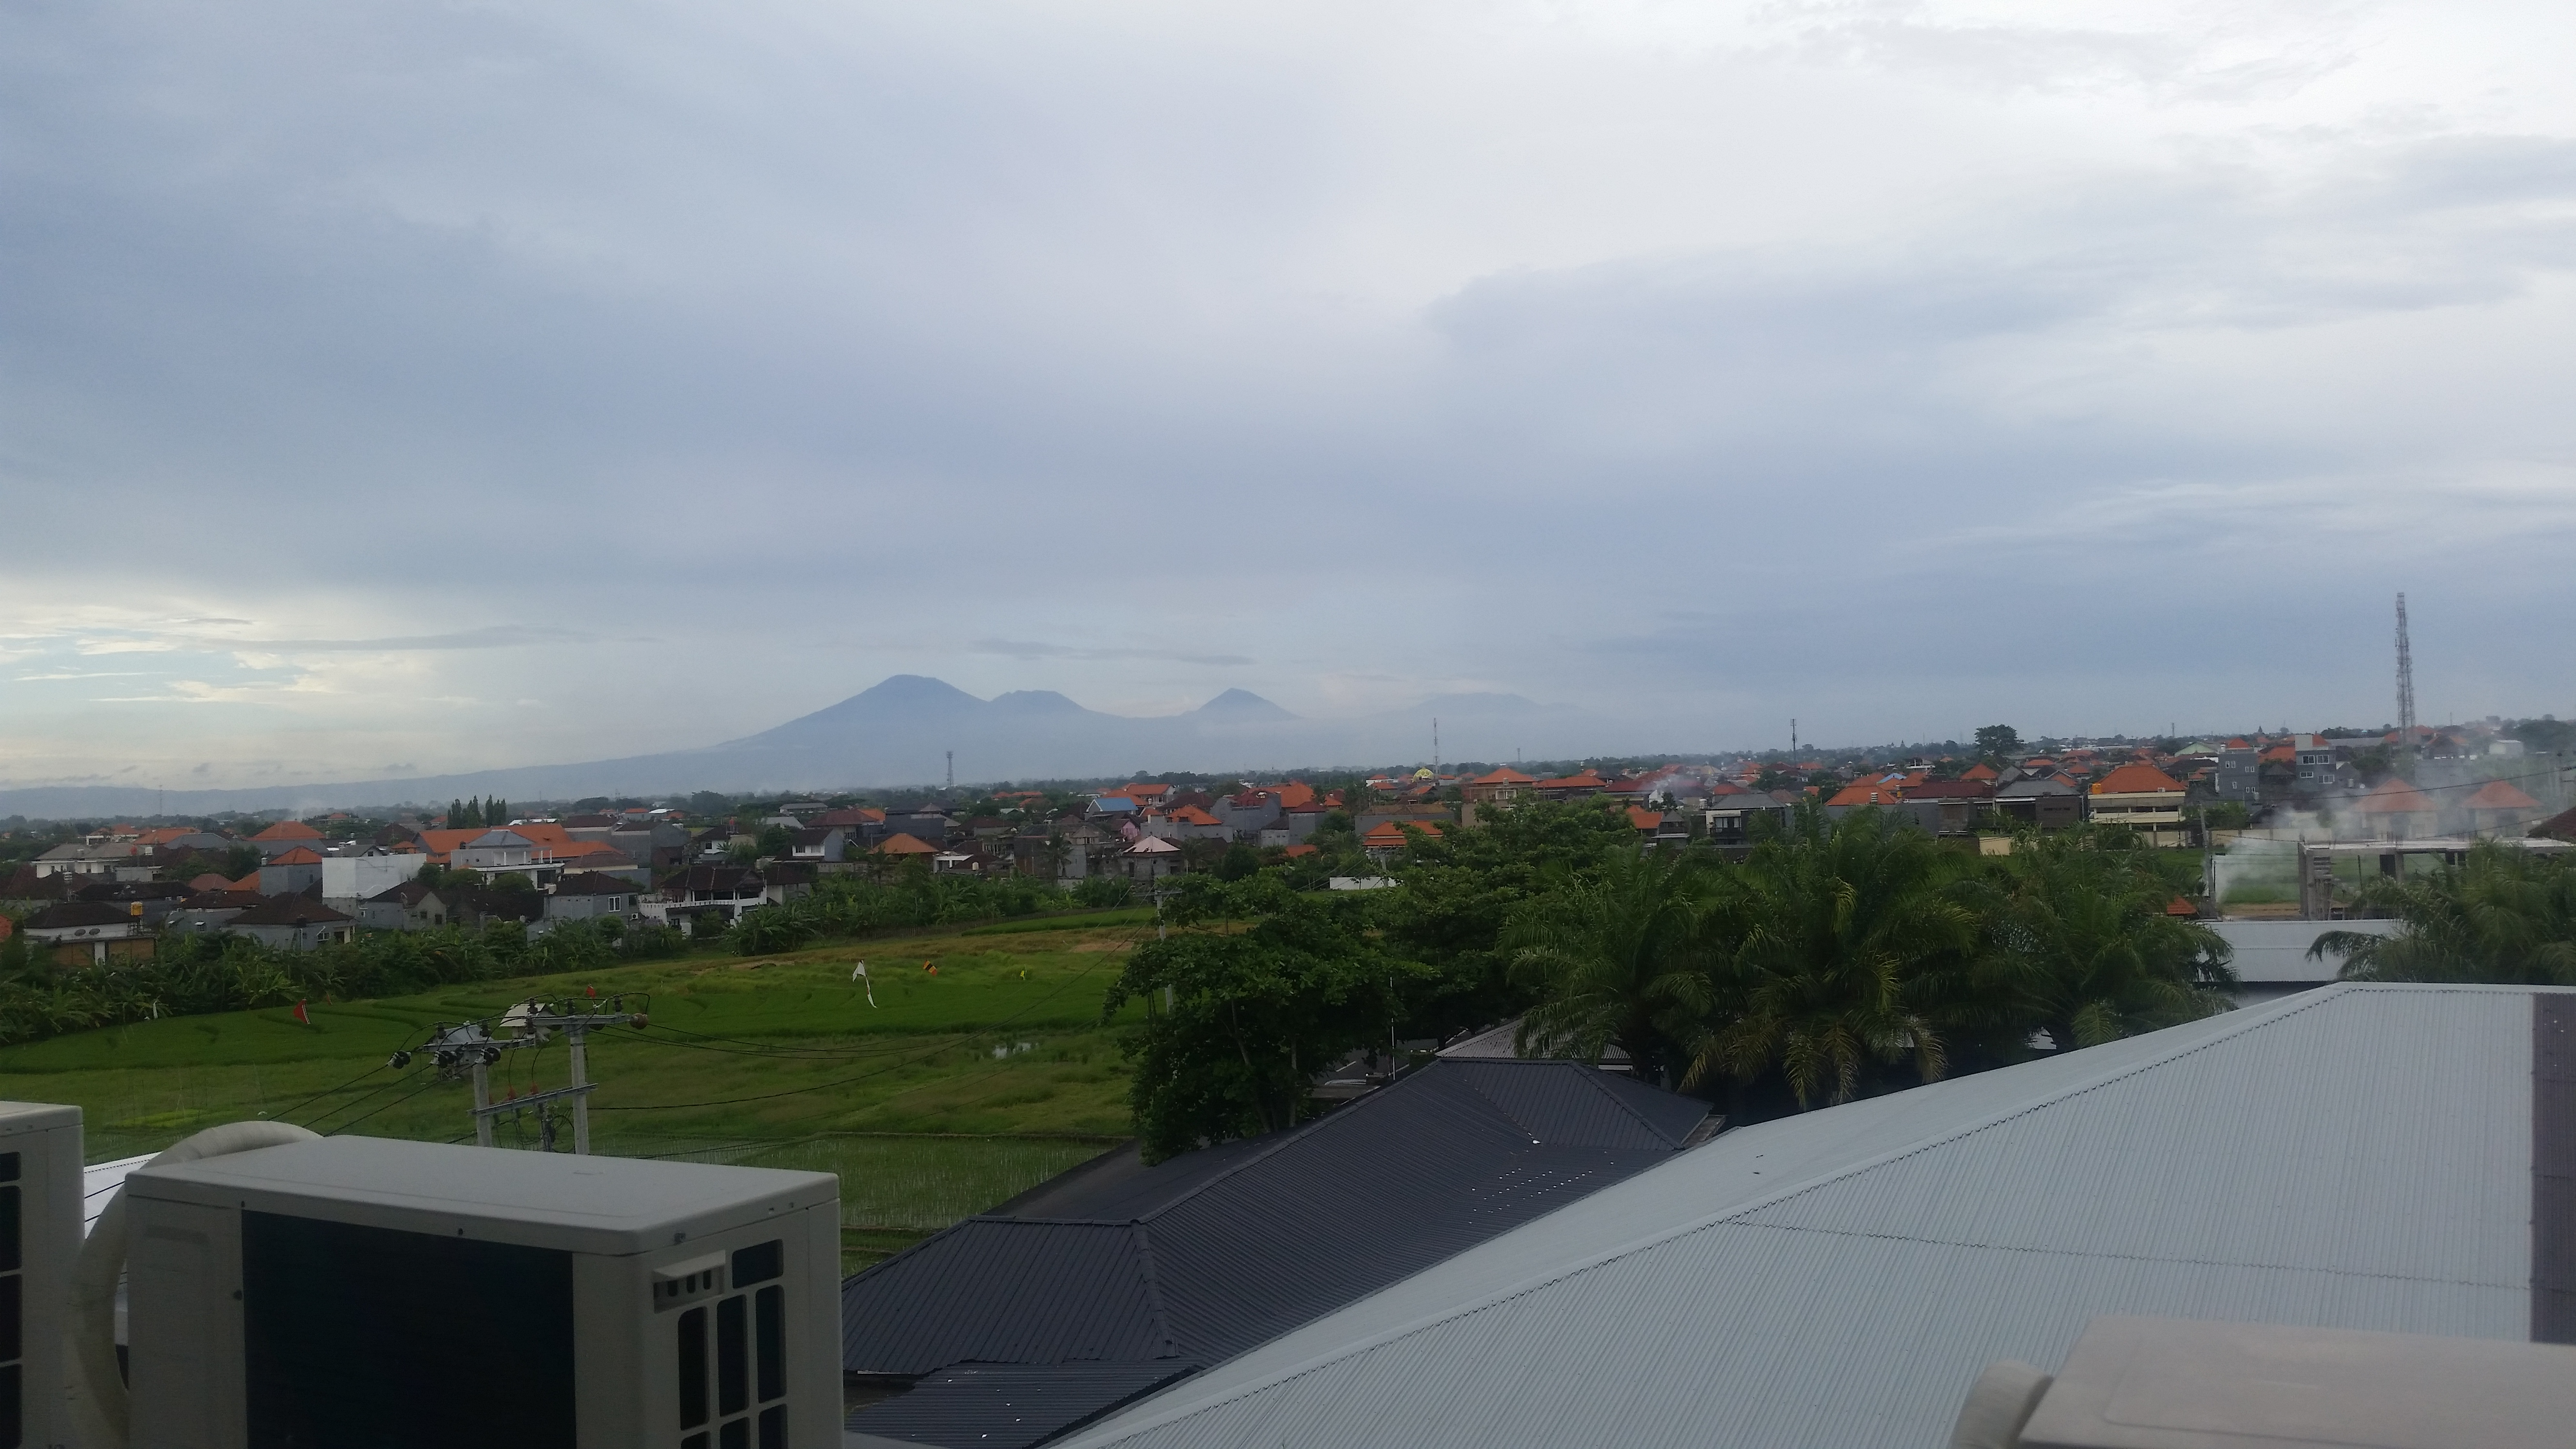 The mountain viewed from Matra! I love this view!